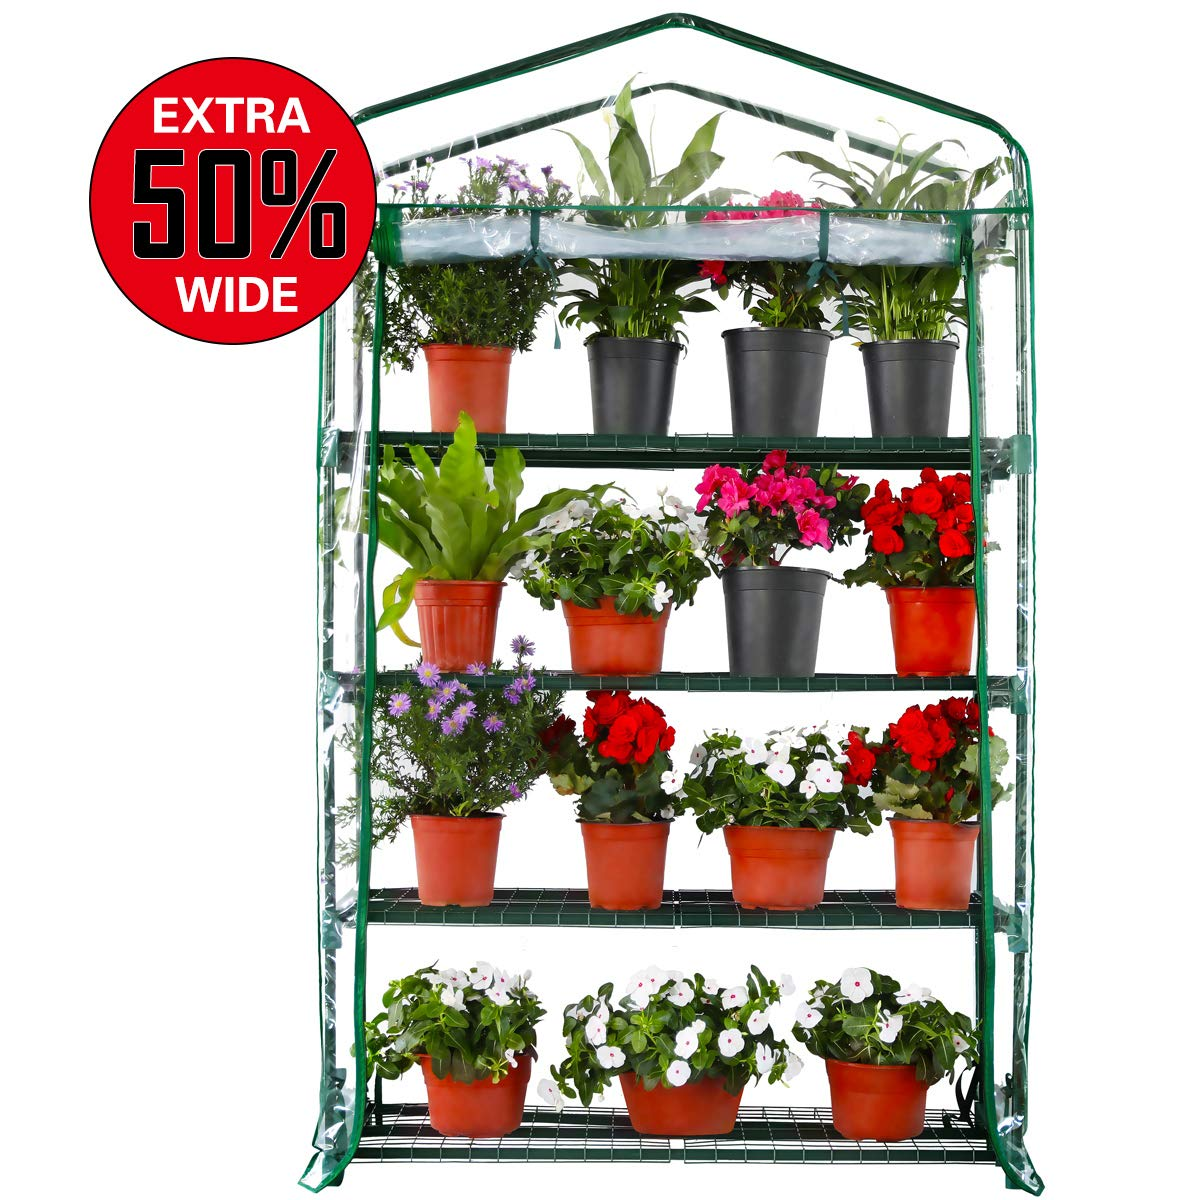 worth 4 tier mini portable greenhouse extra wide for indoor or outdoor use 63 x 40 x 19